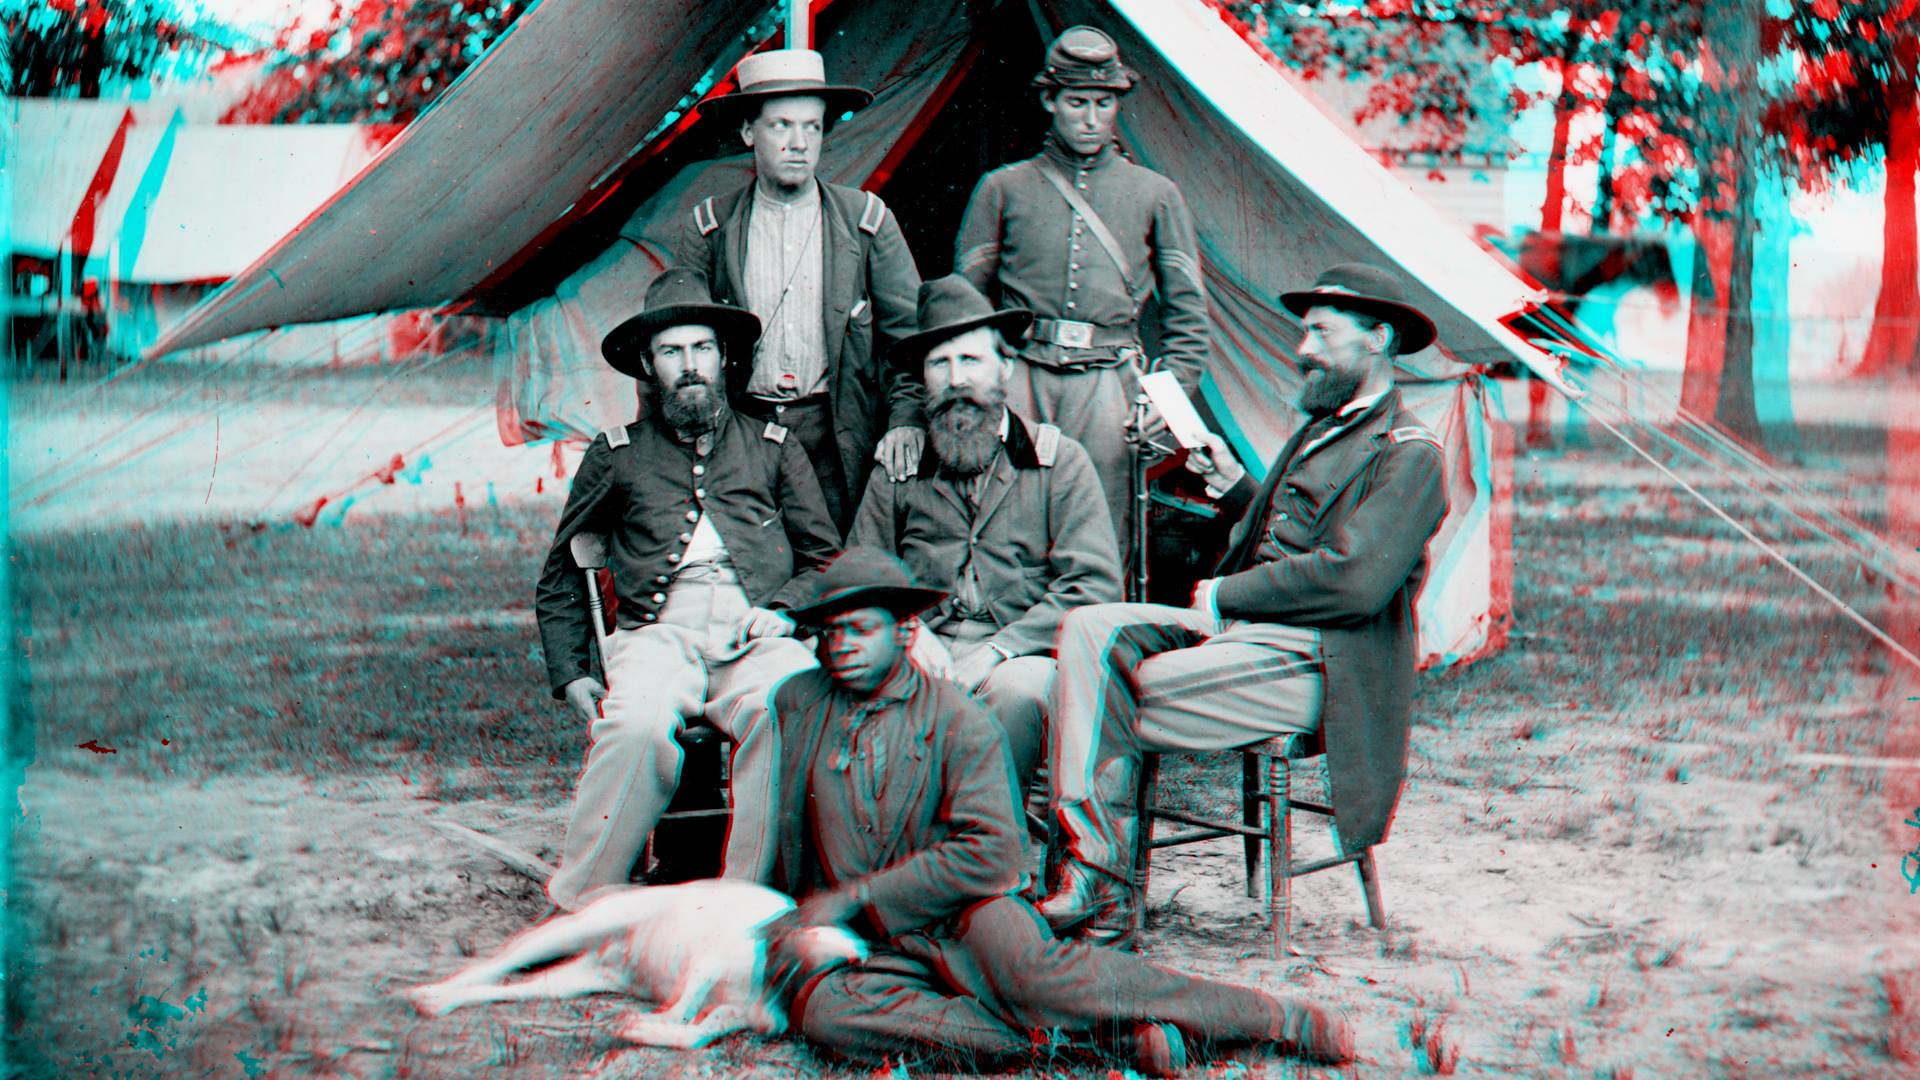 Confederate Secession and the Civil War Are Important Historical Events